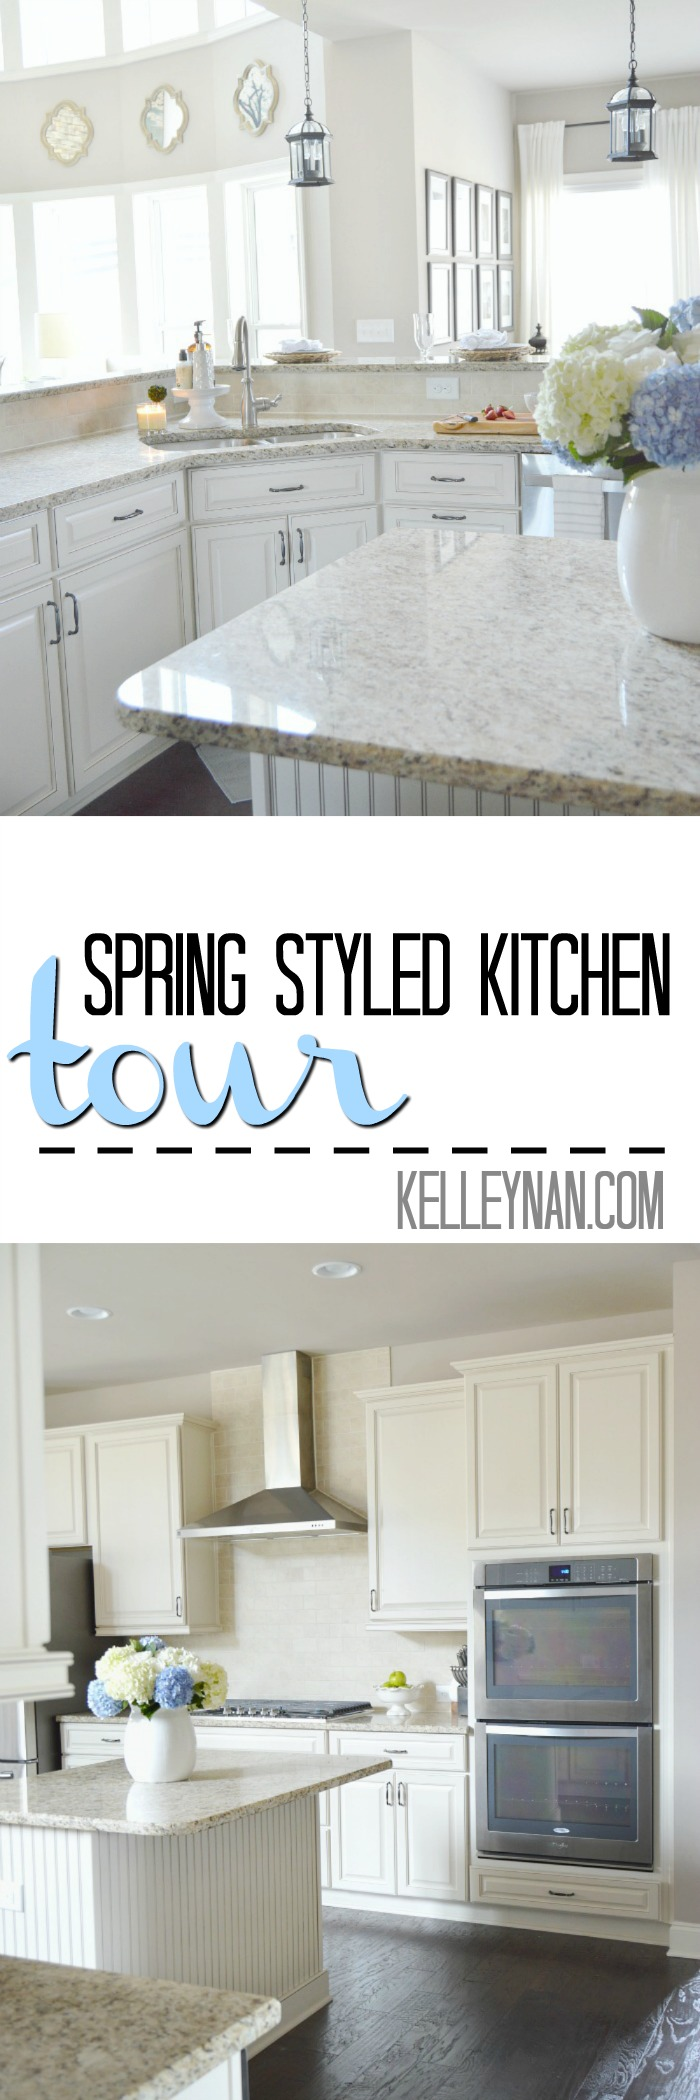 Spring Styled Neutral Kitchen with Hydrangeas